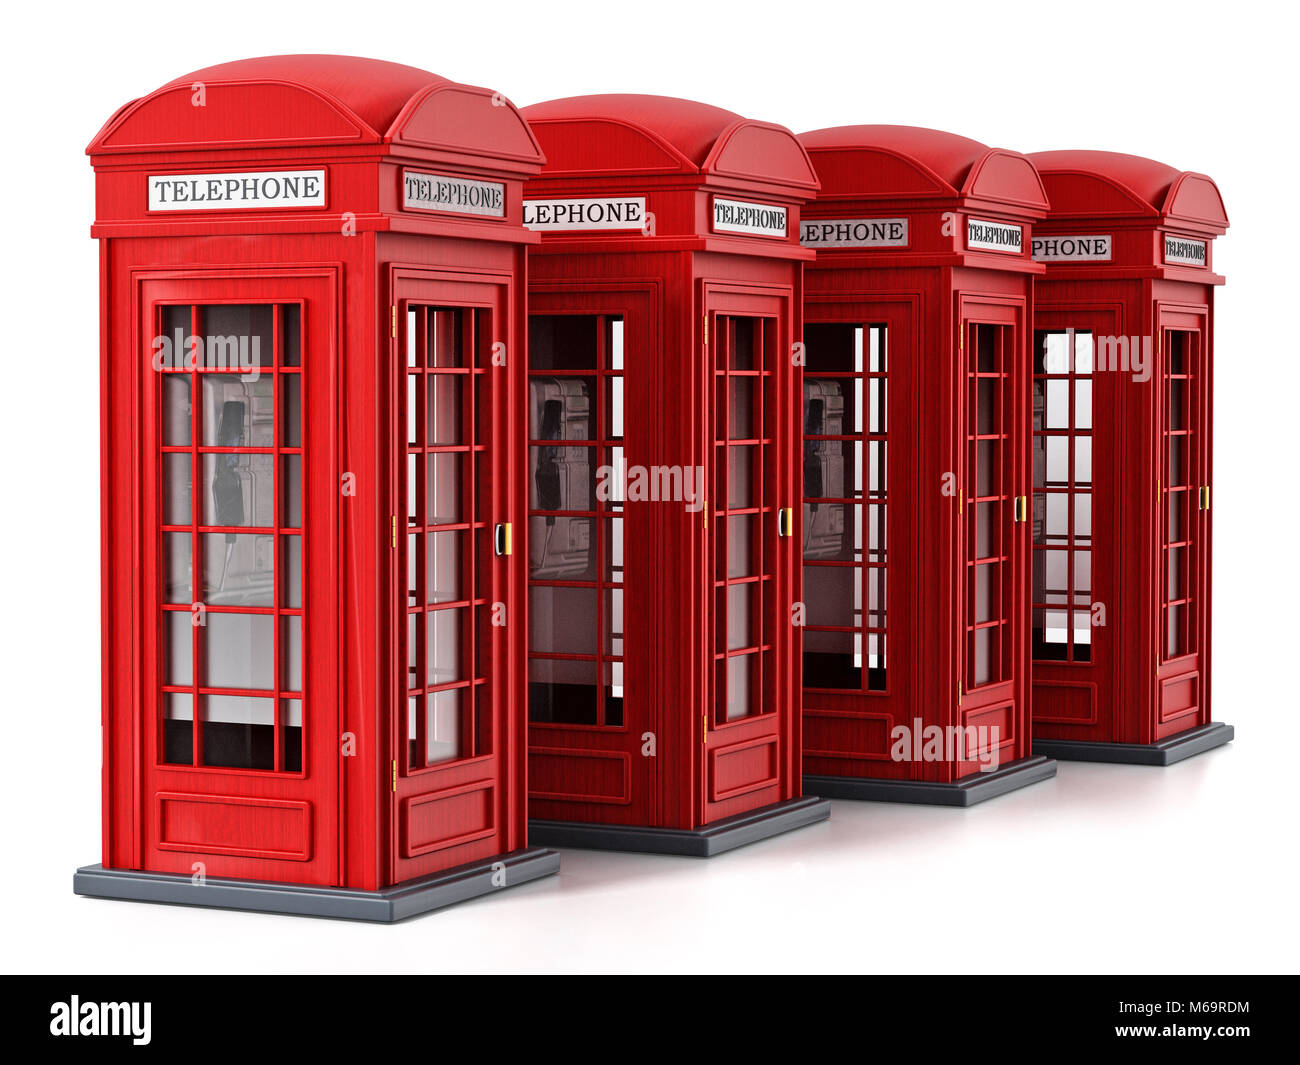 Red British phone booths isolated on white background. 3D illustration. - Stock Image